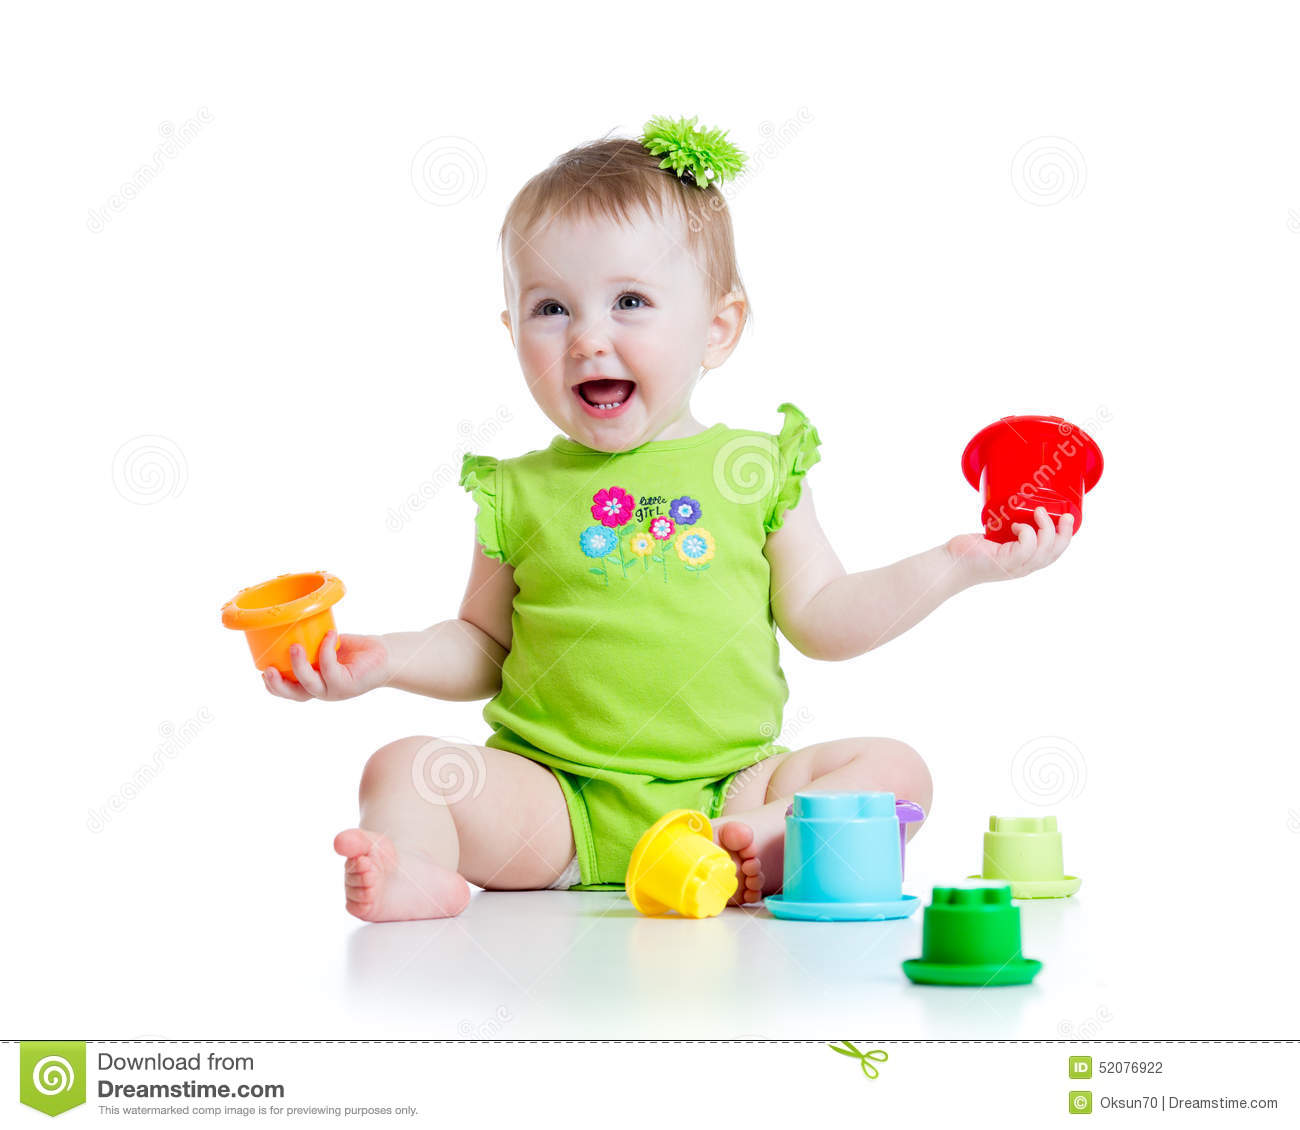 Girl Toys Color : Smiling child girl playing with color toys stock photo